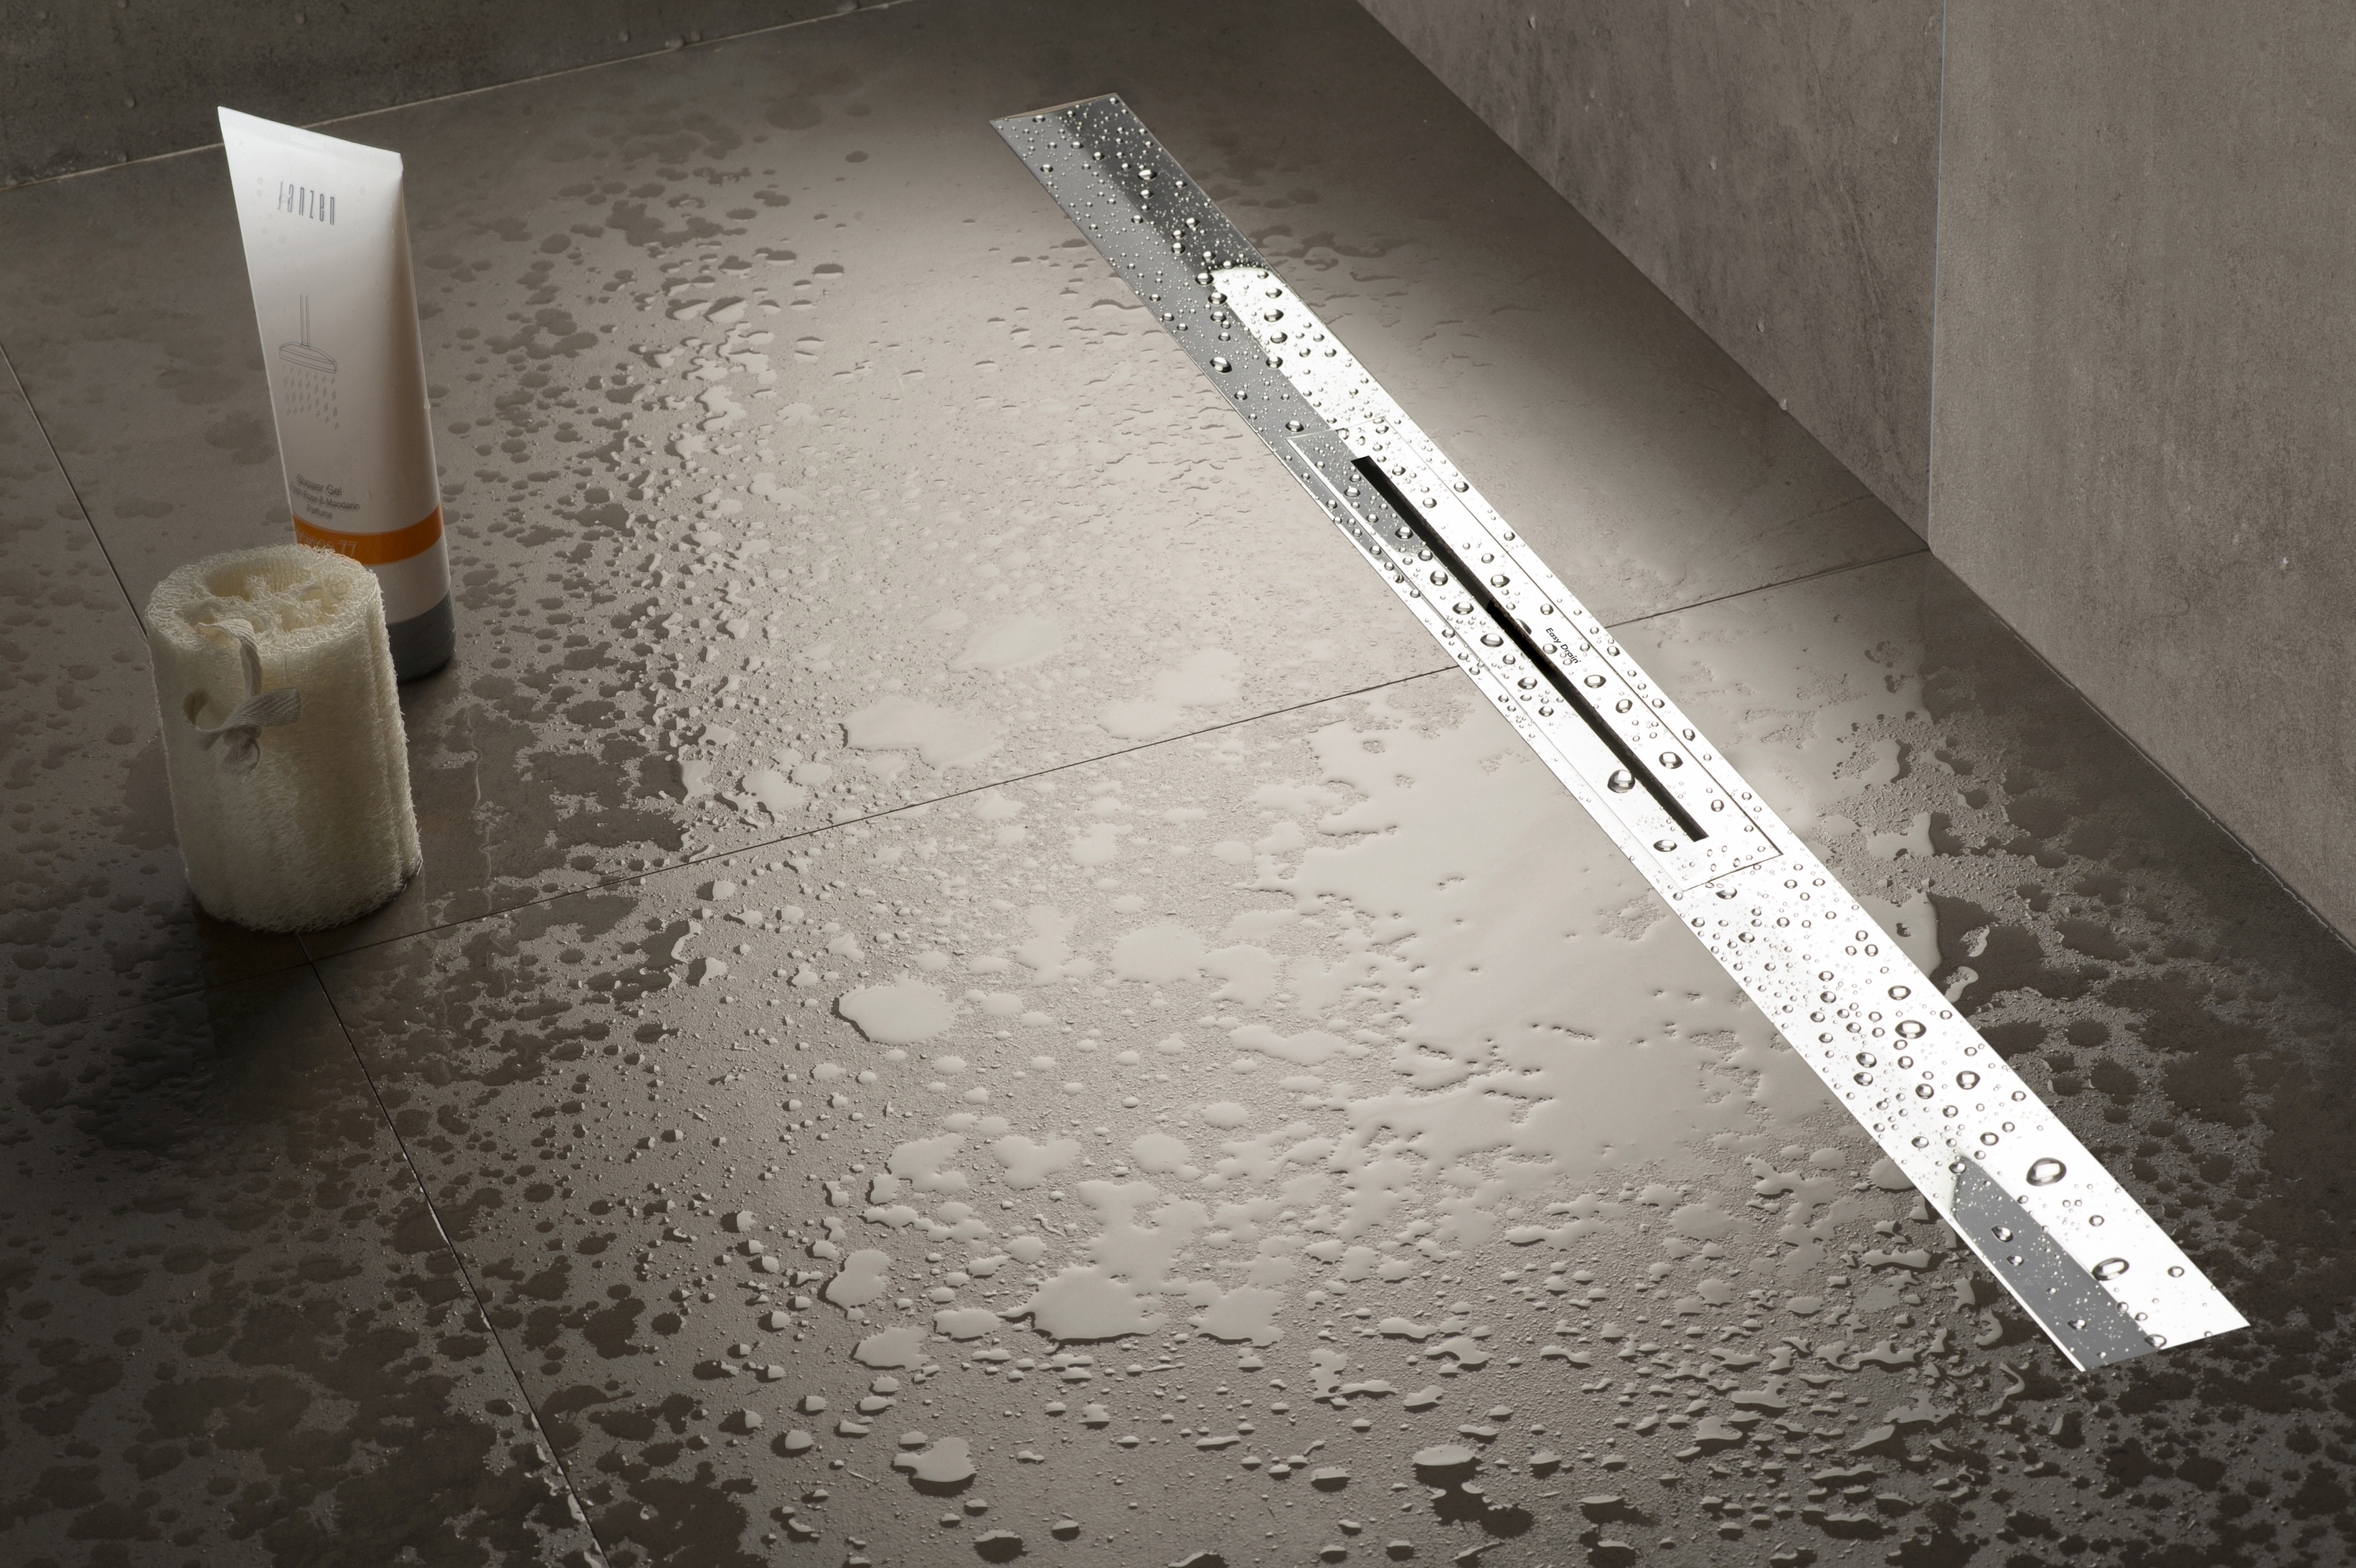 Easy Drain Debuts Linear Product With Subtle Slope